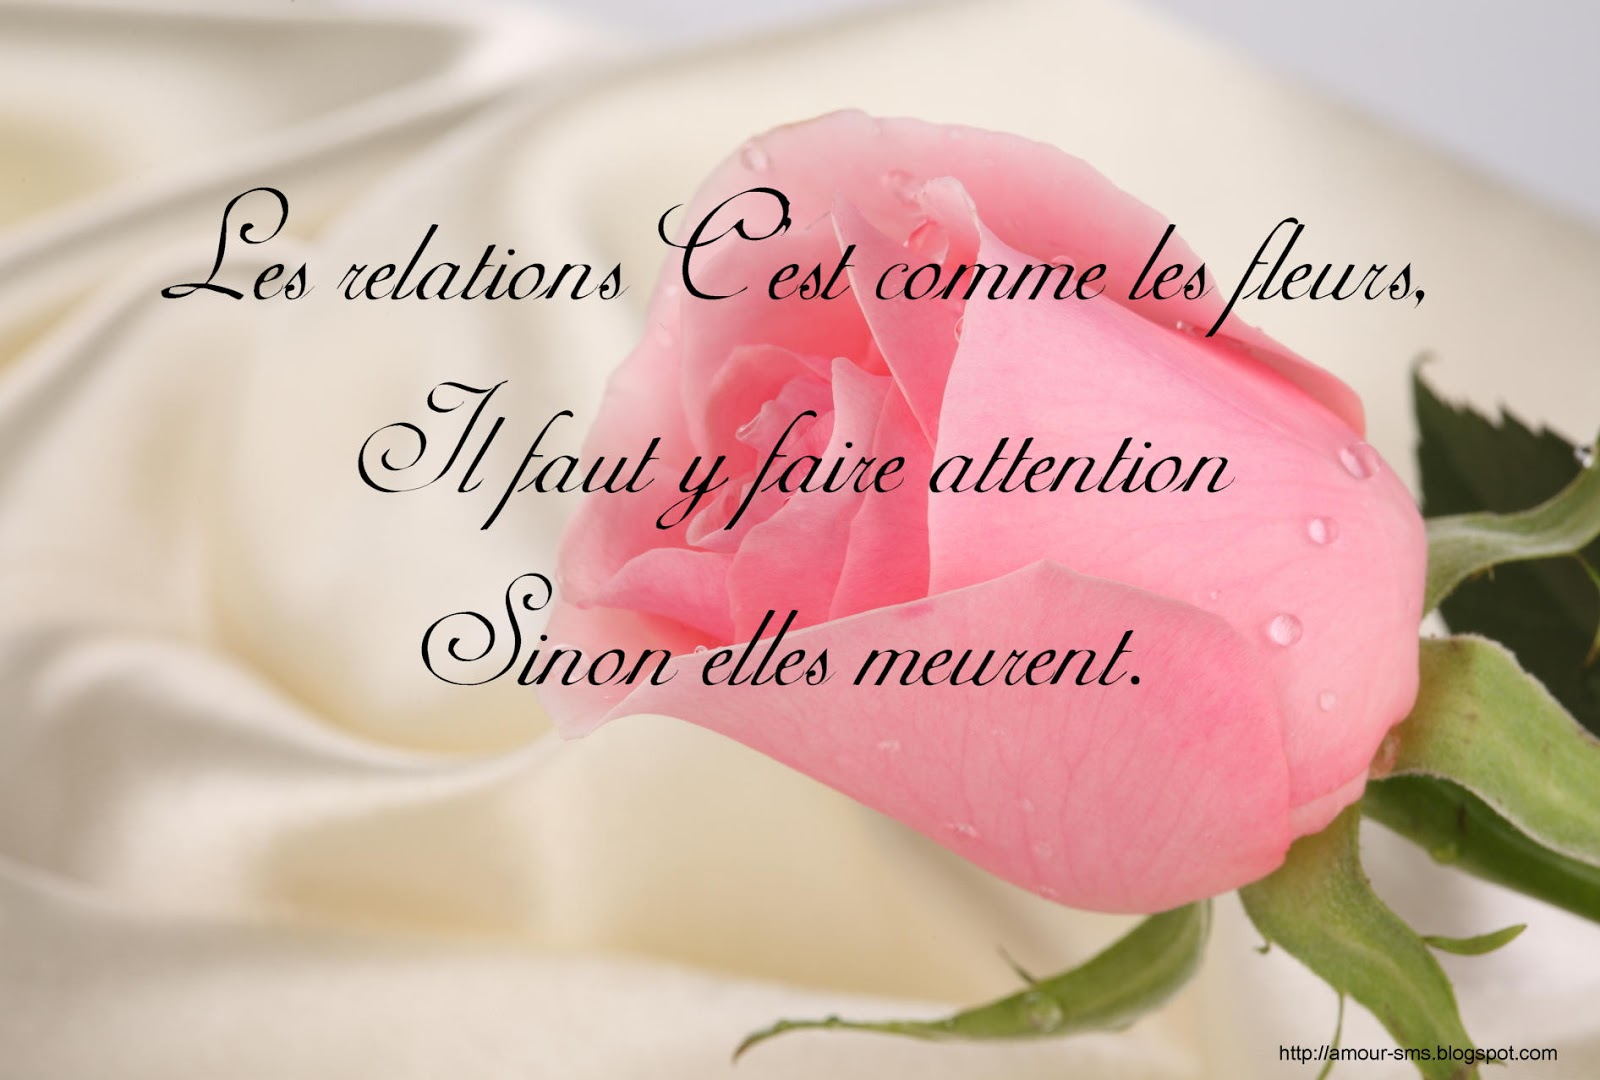 Top Proverbes et citations d'amour en images - Message d'amour NS14